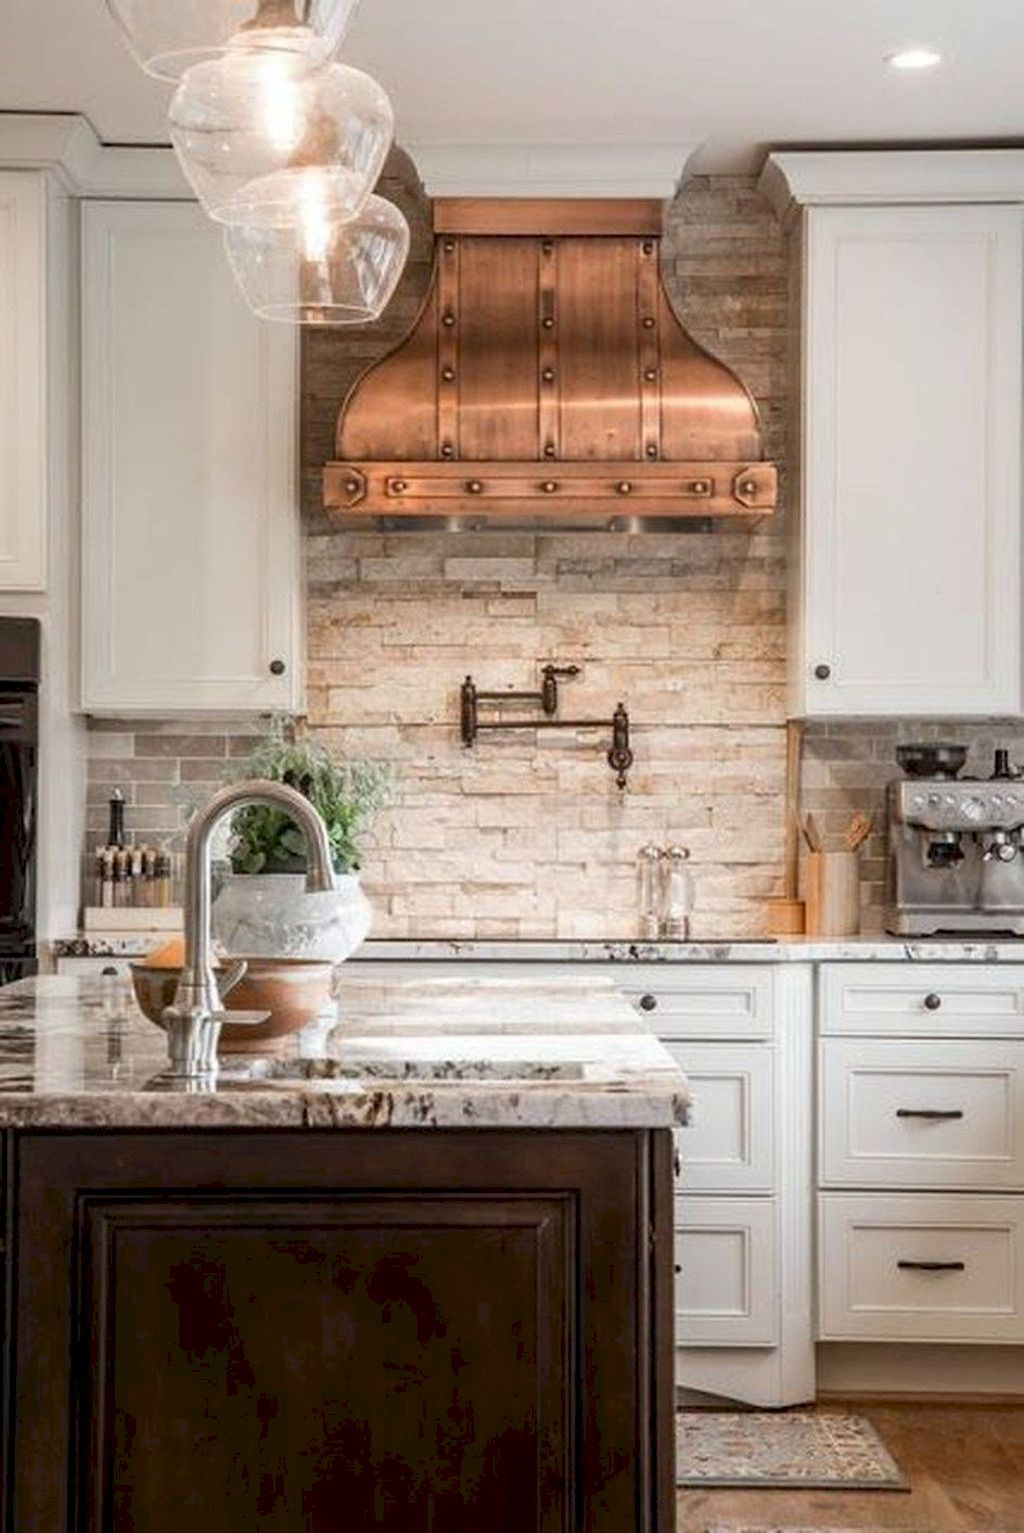 Fabulous Kitchen Backsplash Ideas For A Clean Culinary Experience Home To Z Country Kitchen Backsplash French Country Decorating Kitchen Country Style Kitchen